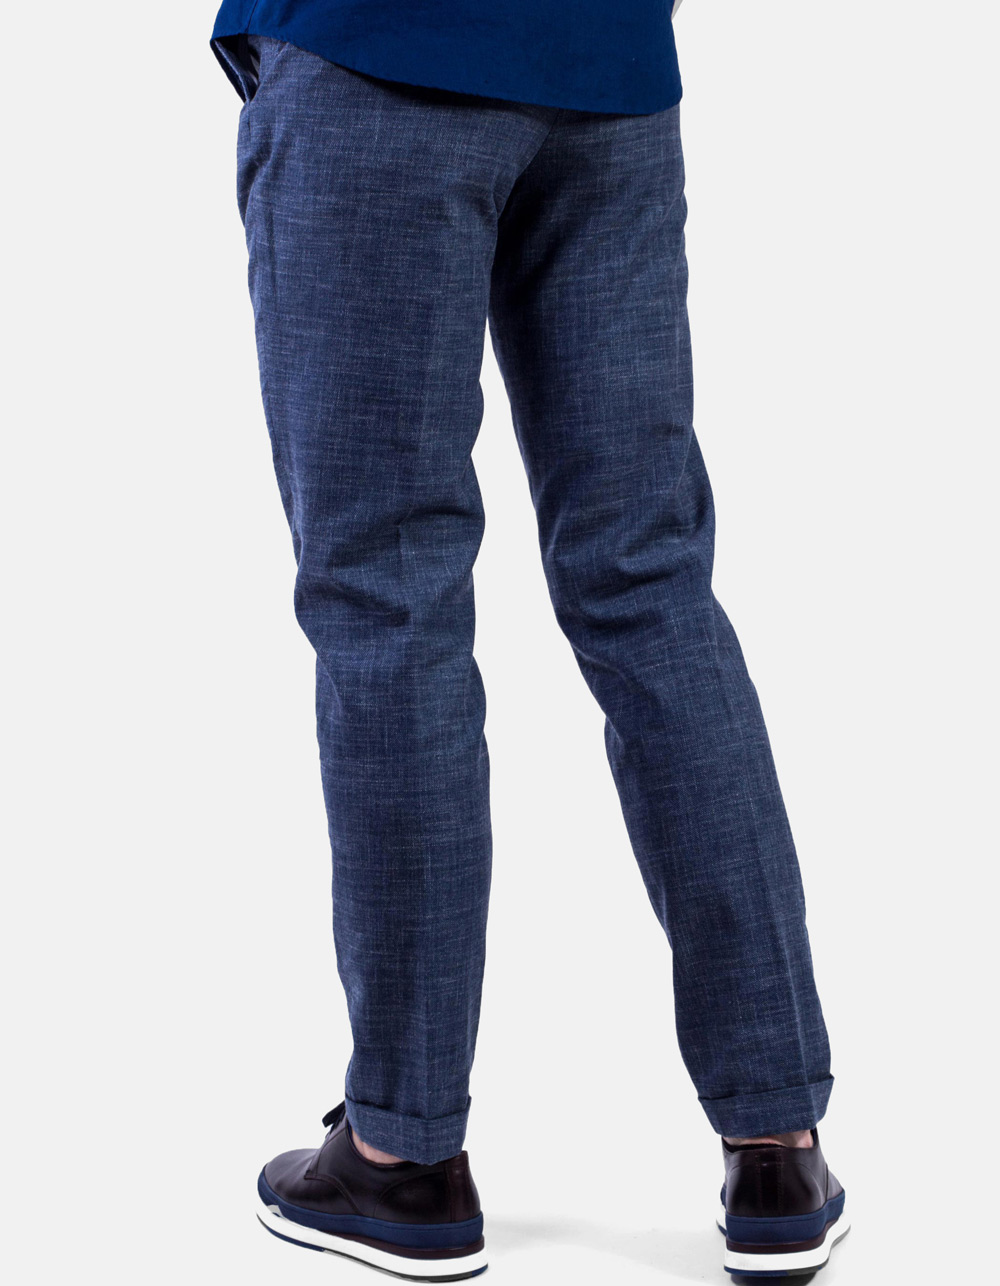 French pocket blue trousers - Backside